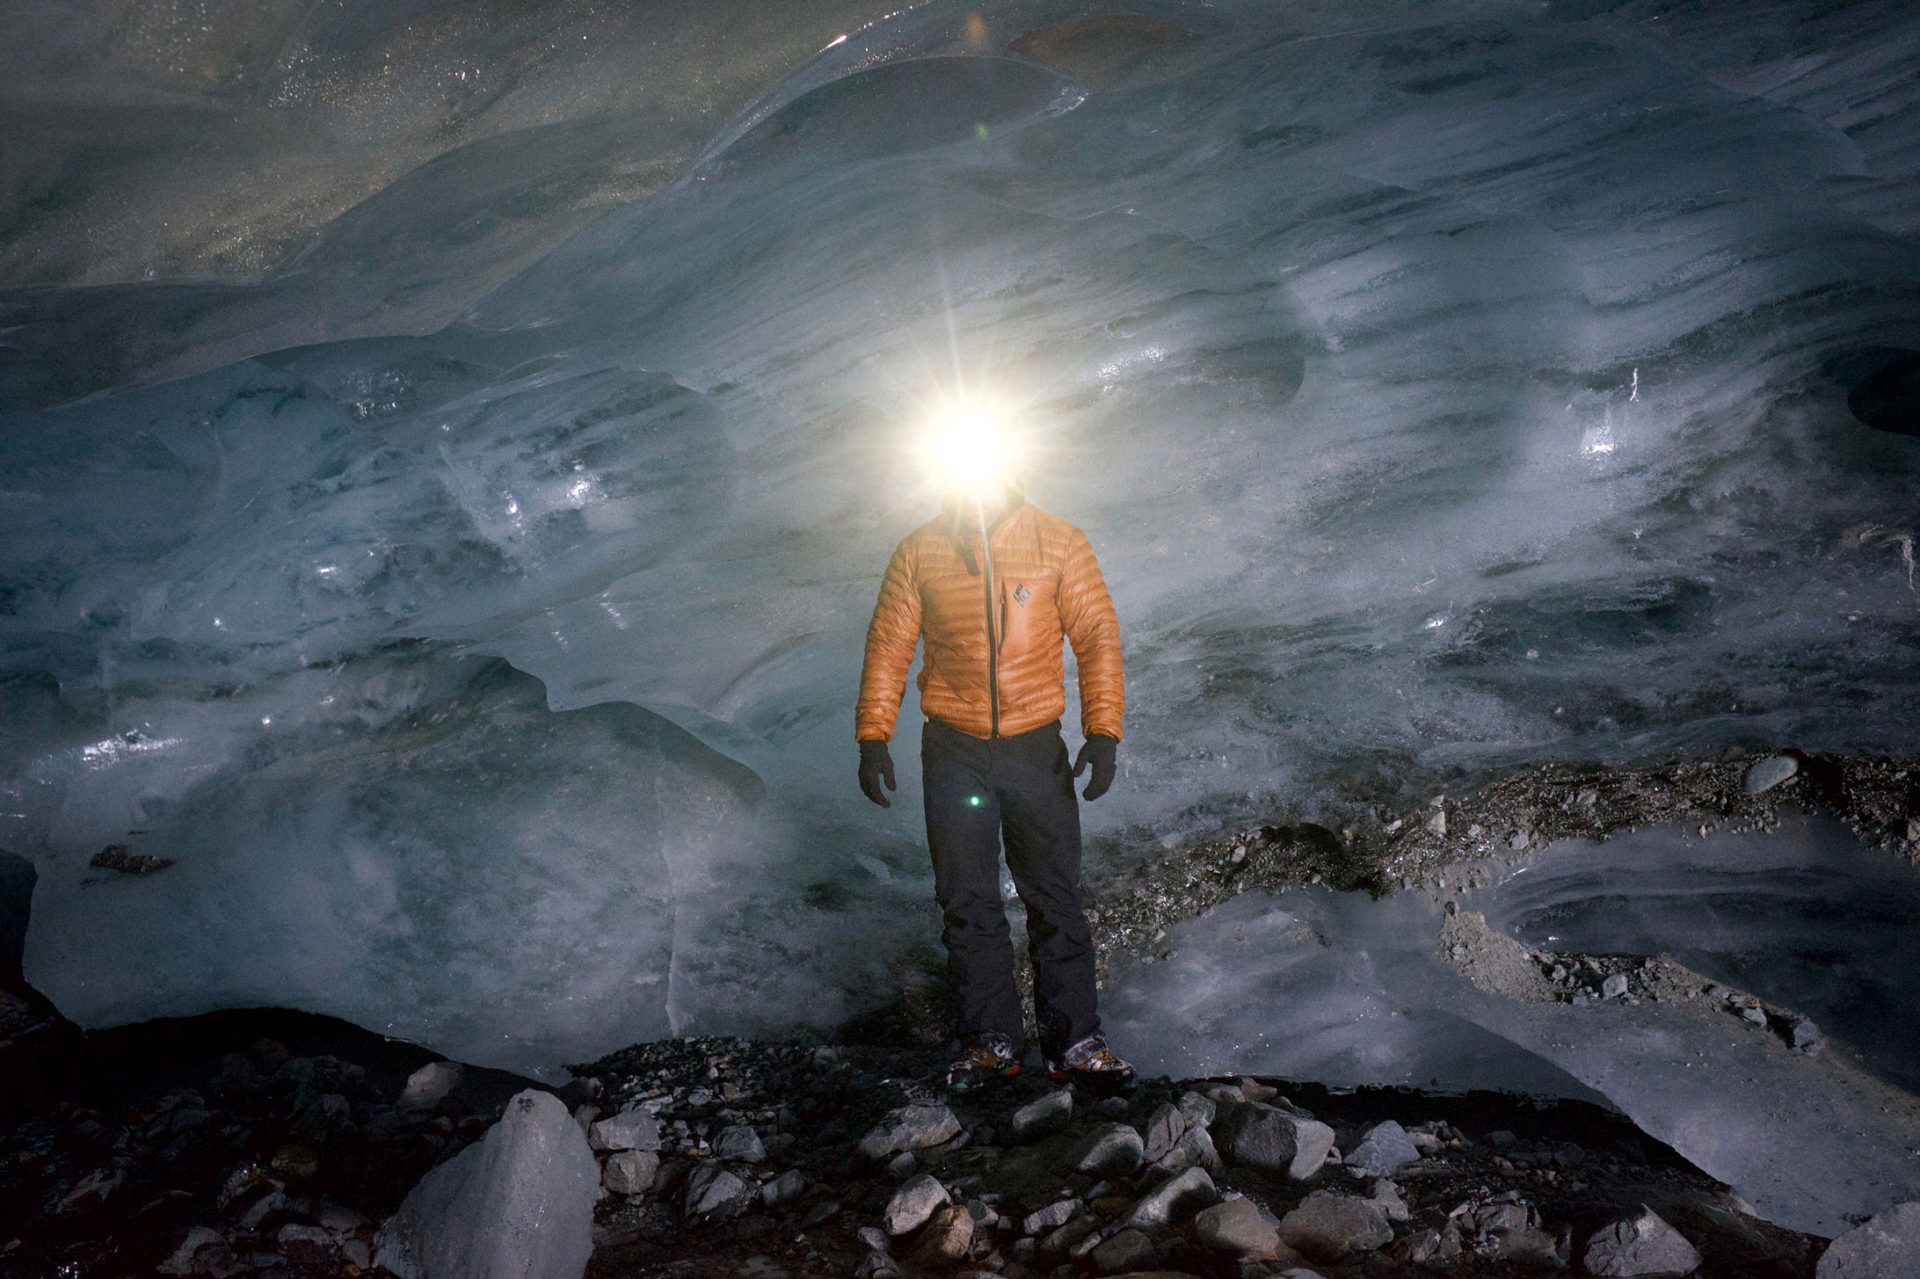 Headlamp in the ice caves